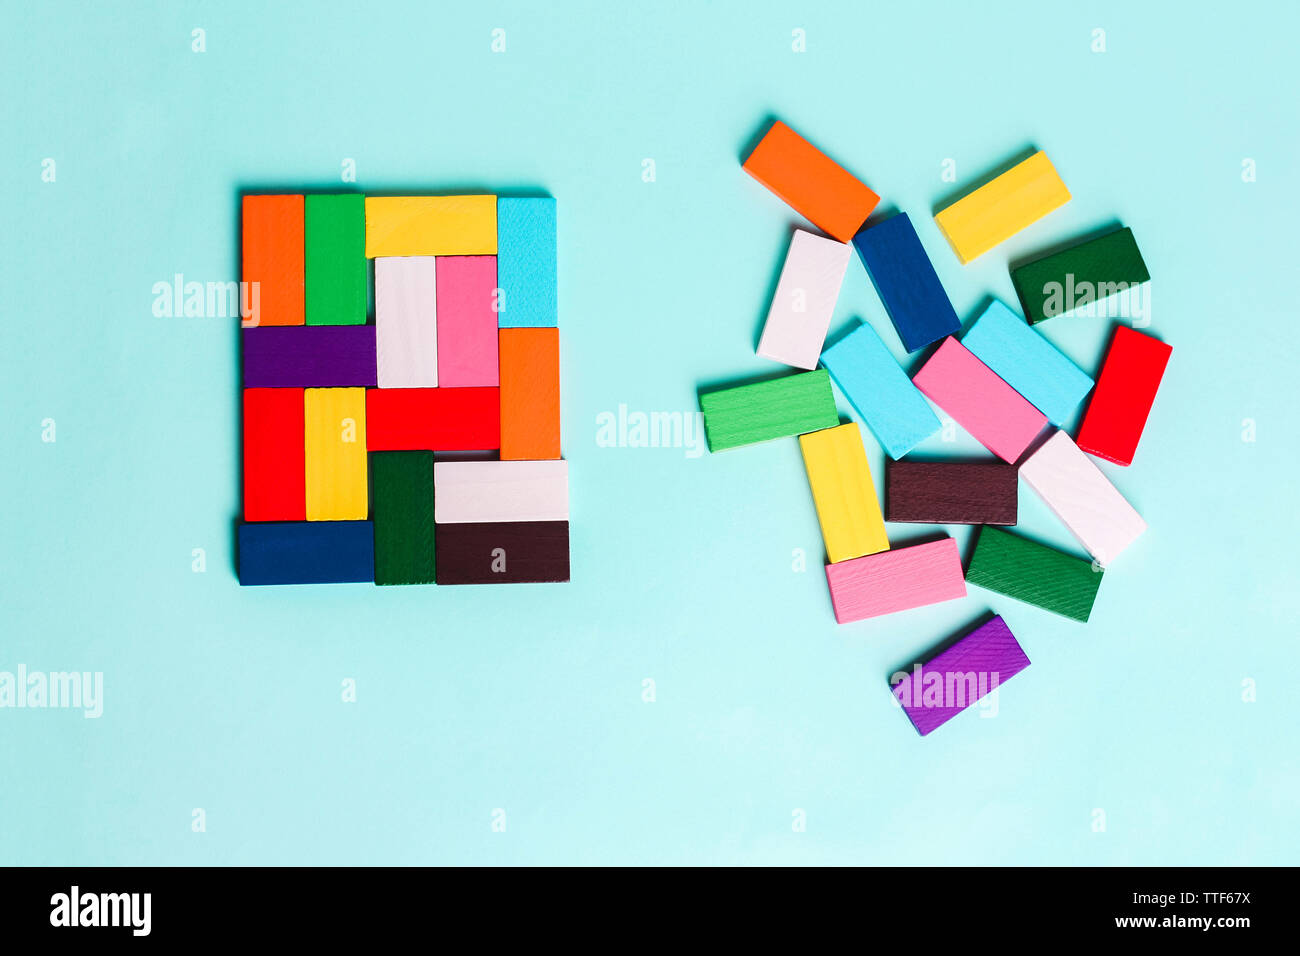 order and chaos. Chaotic unorganized colored dominoes and ordered. Concept of business model, organization. Left and right hemisphere of the brain. - Stock Image